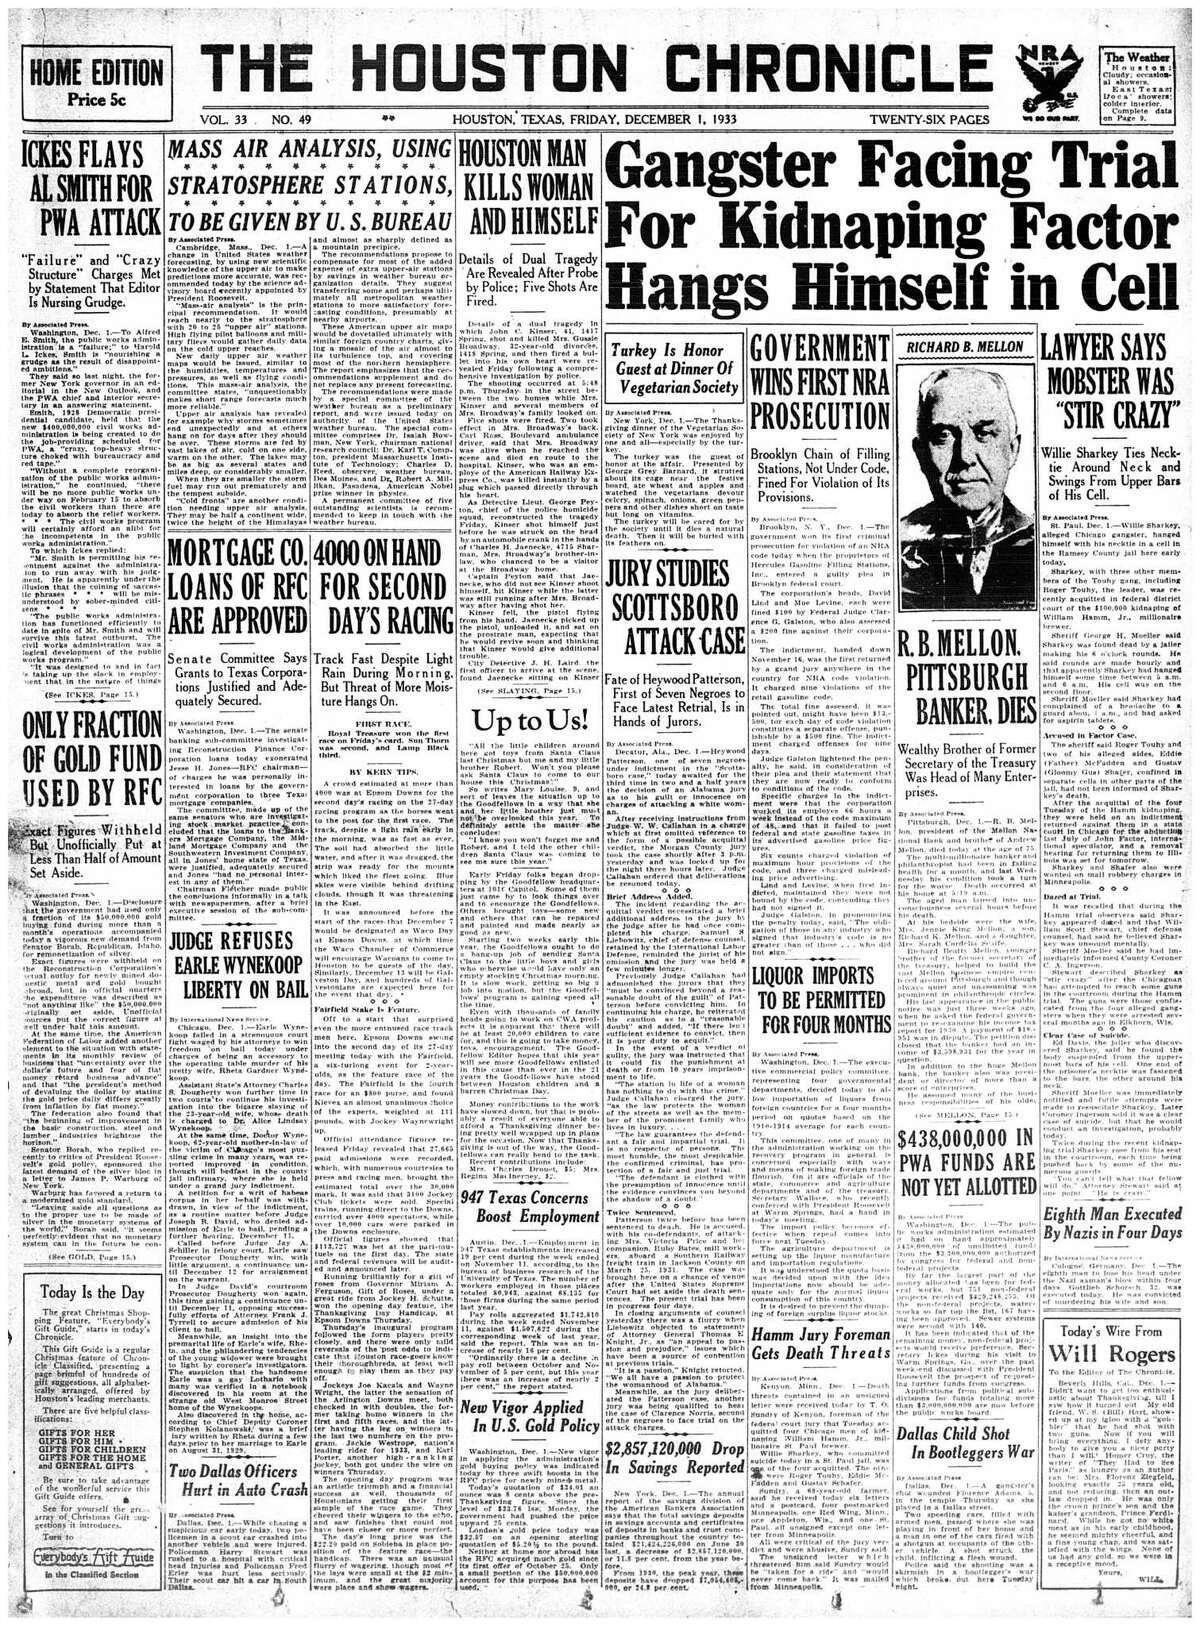 Houston Chronicle front page : December 1, 1933 - section 1, page 1. 4000 ON HAND FOR SECOND DAY'S RACING